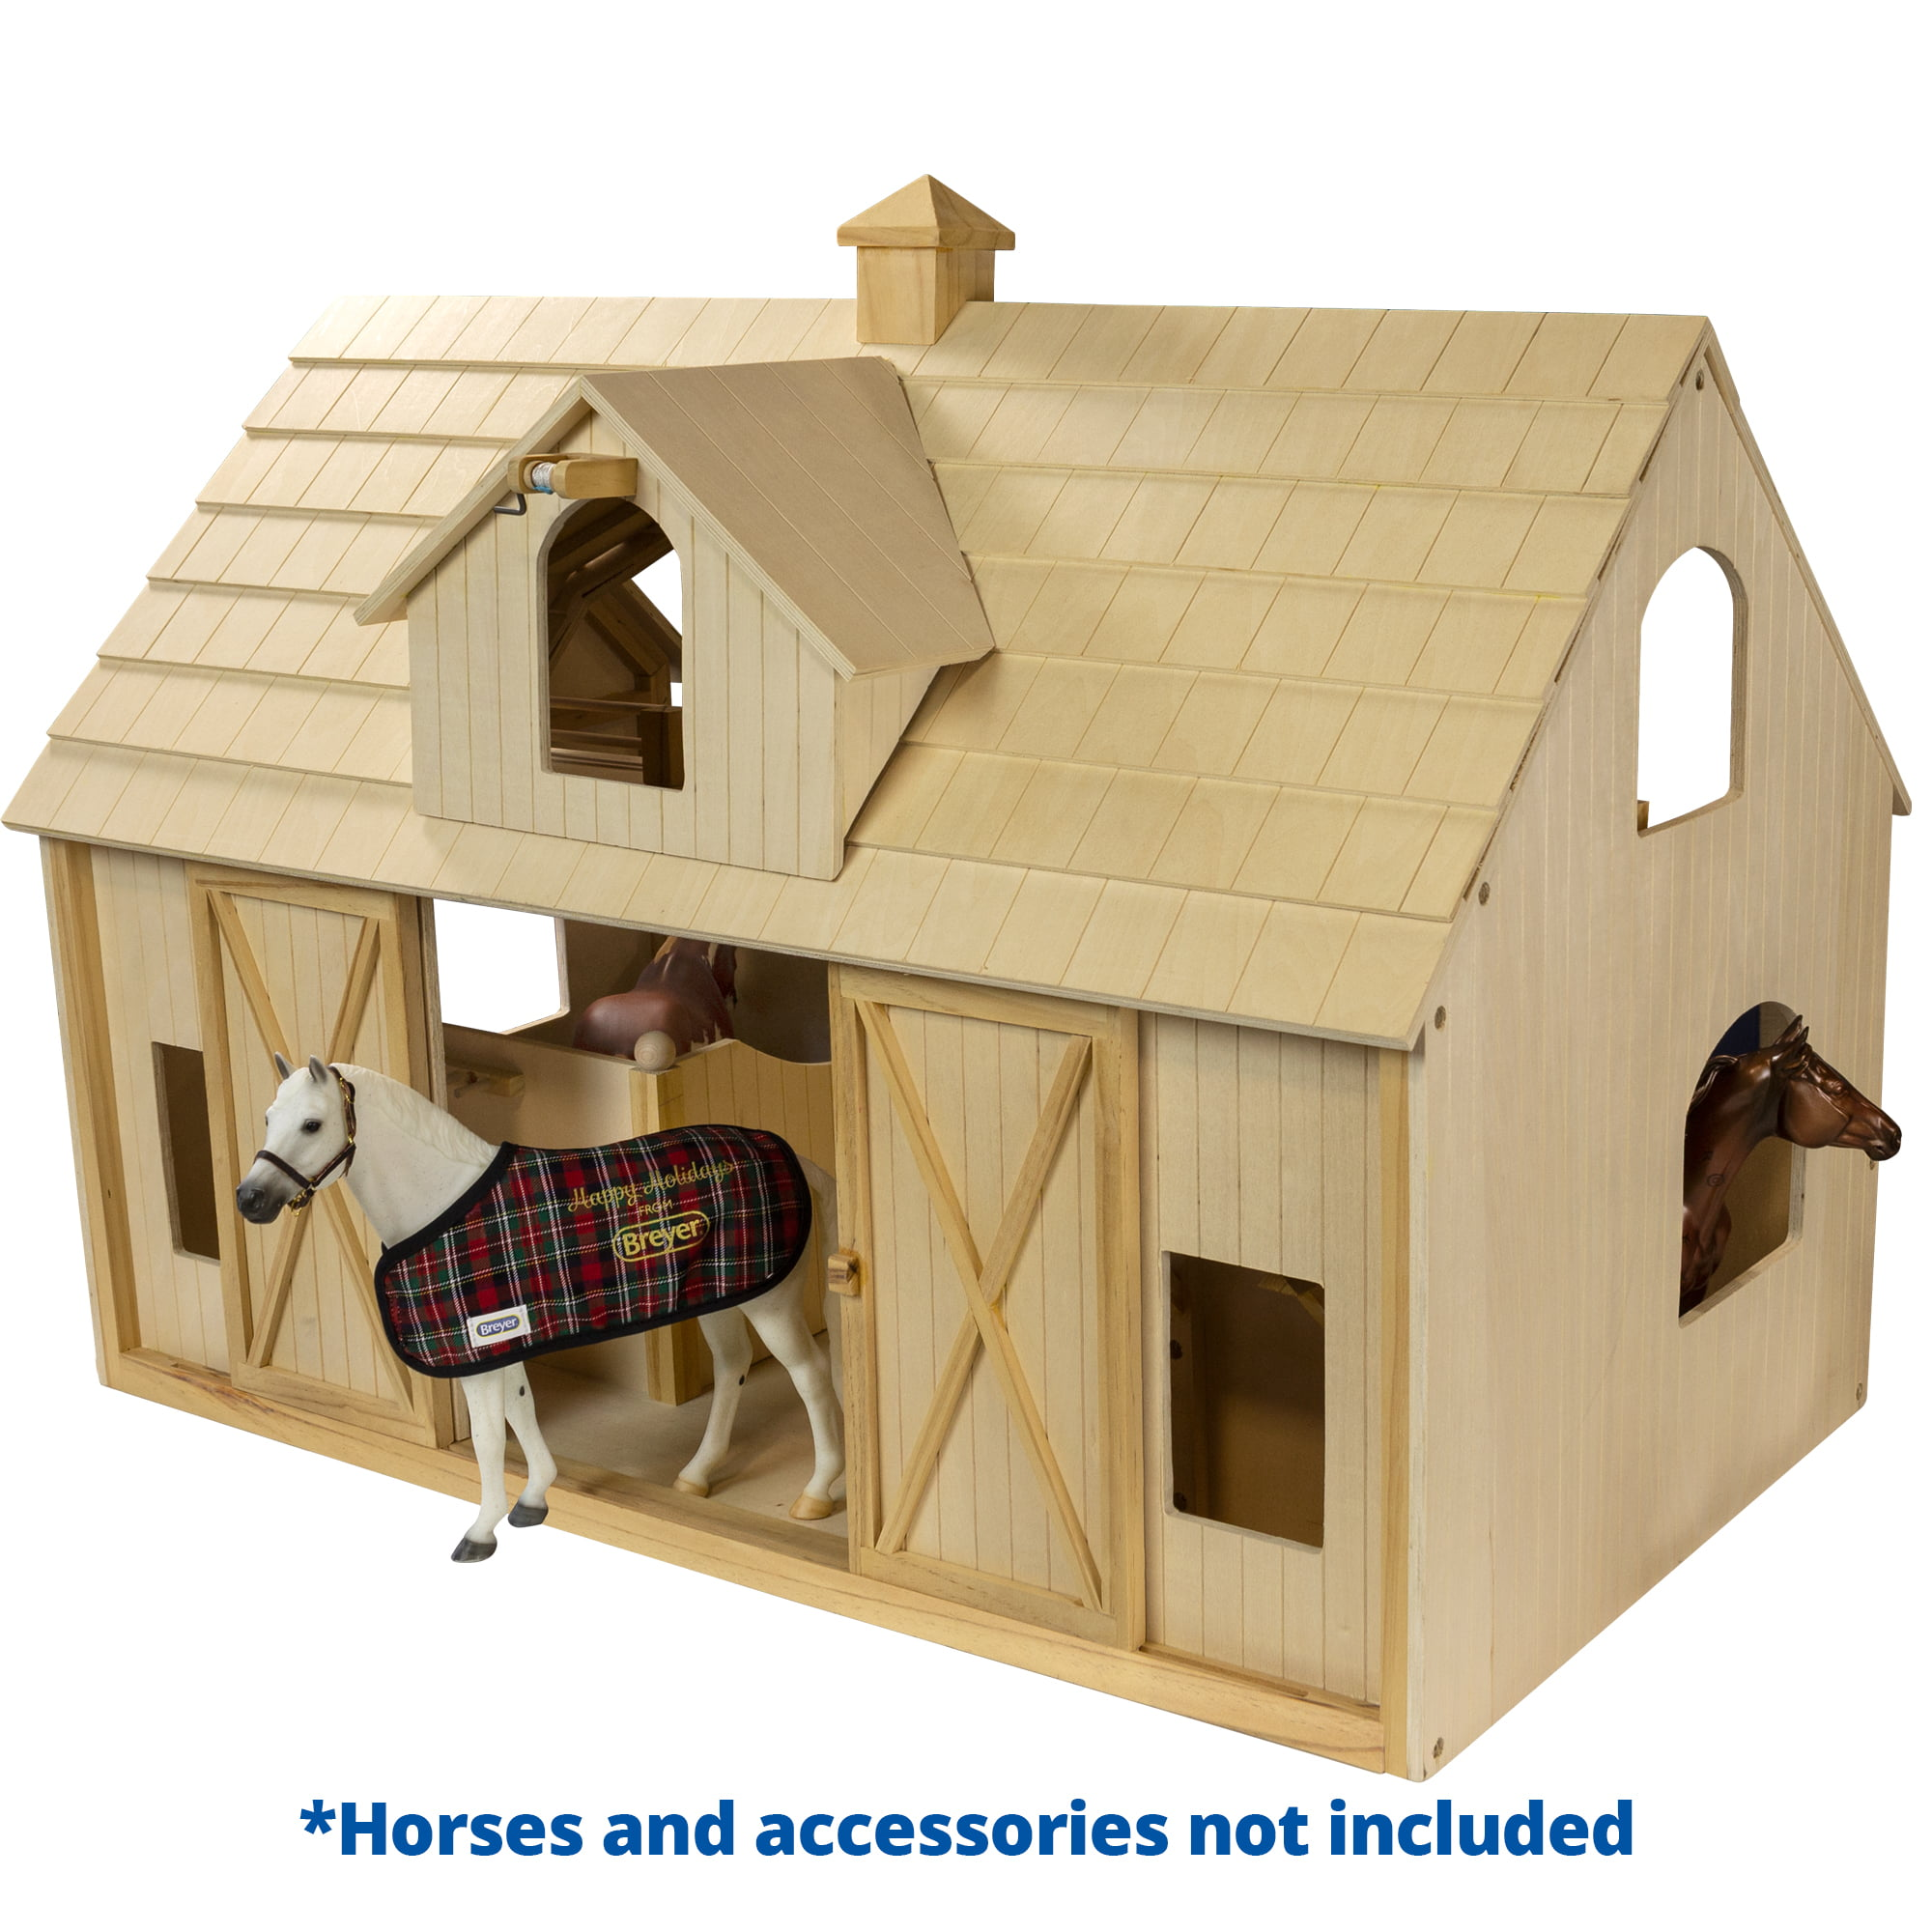 Breyer Traditional Deluxe Wood Horse Barn W Cupola Toy Model Walmart Com Walmart Com